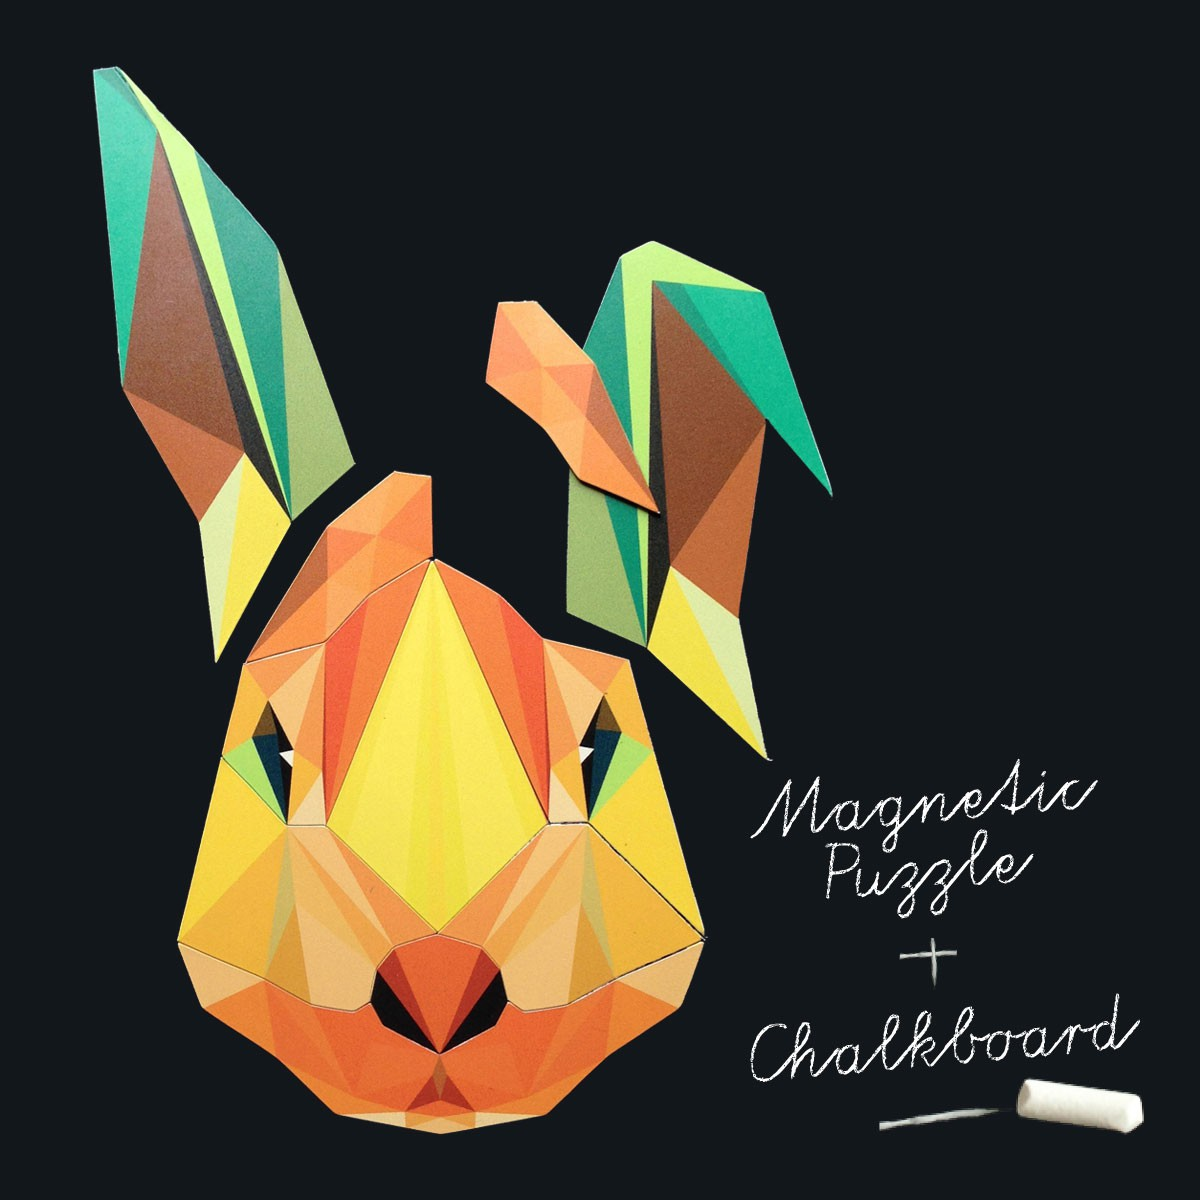 Magnet puzzle rabbit chalkboard magnet wallpaper   Groovy Magnets 1200x1200